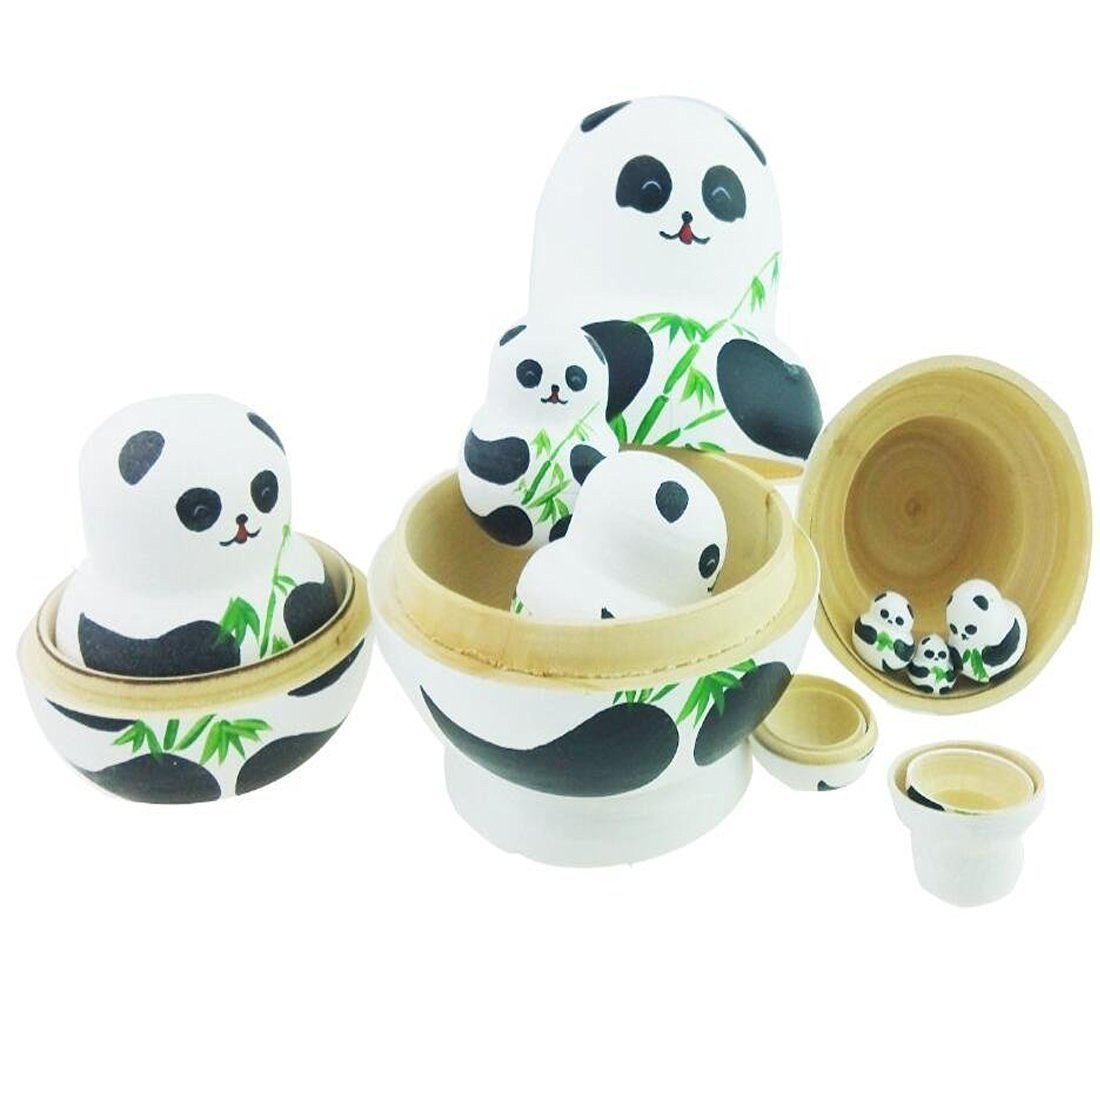 Unigift Cute Animal Panda with Bamboo Handmade Wooden Russian Nesting Dolls Matryoshka Dolls Set 10 Pieces for Kids Toy Home Decoration by Unigift (Image #2)